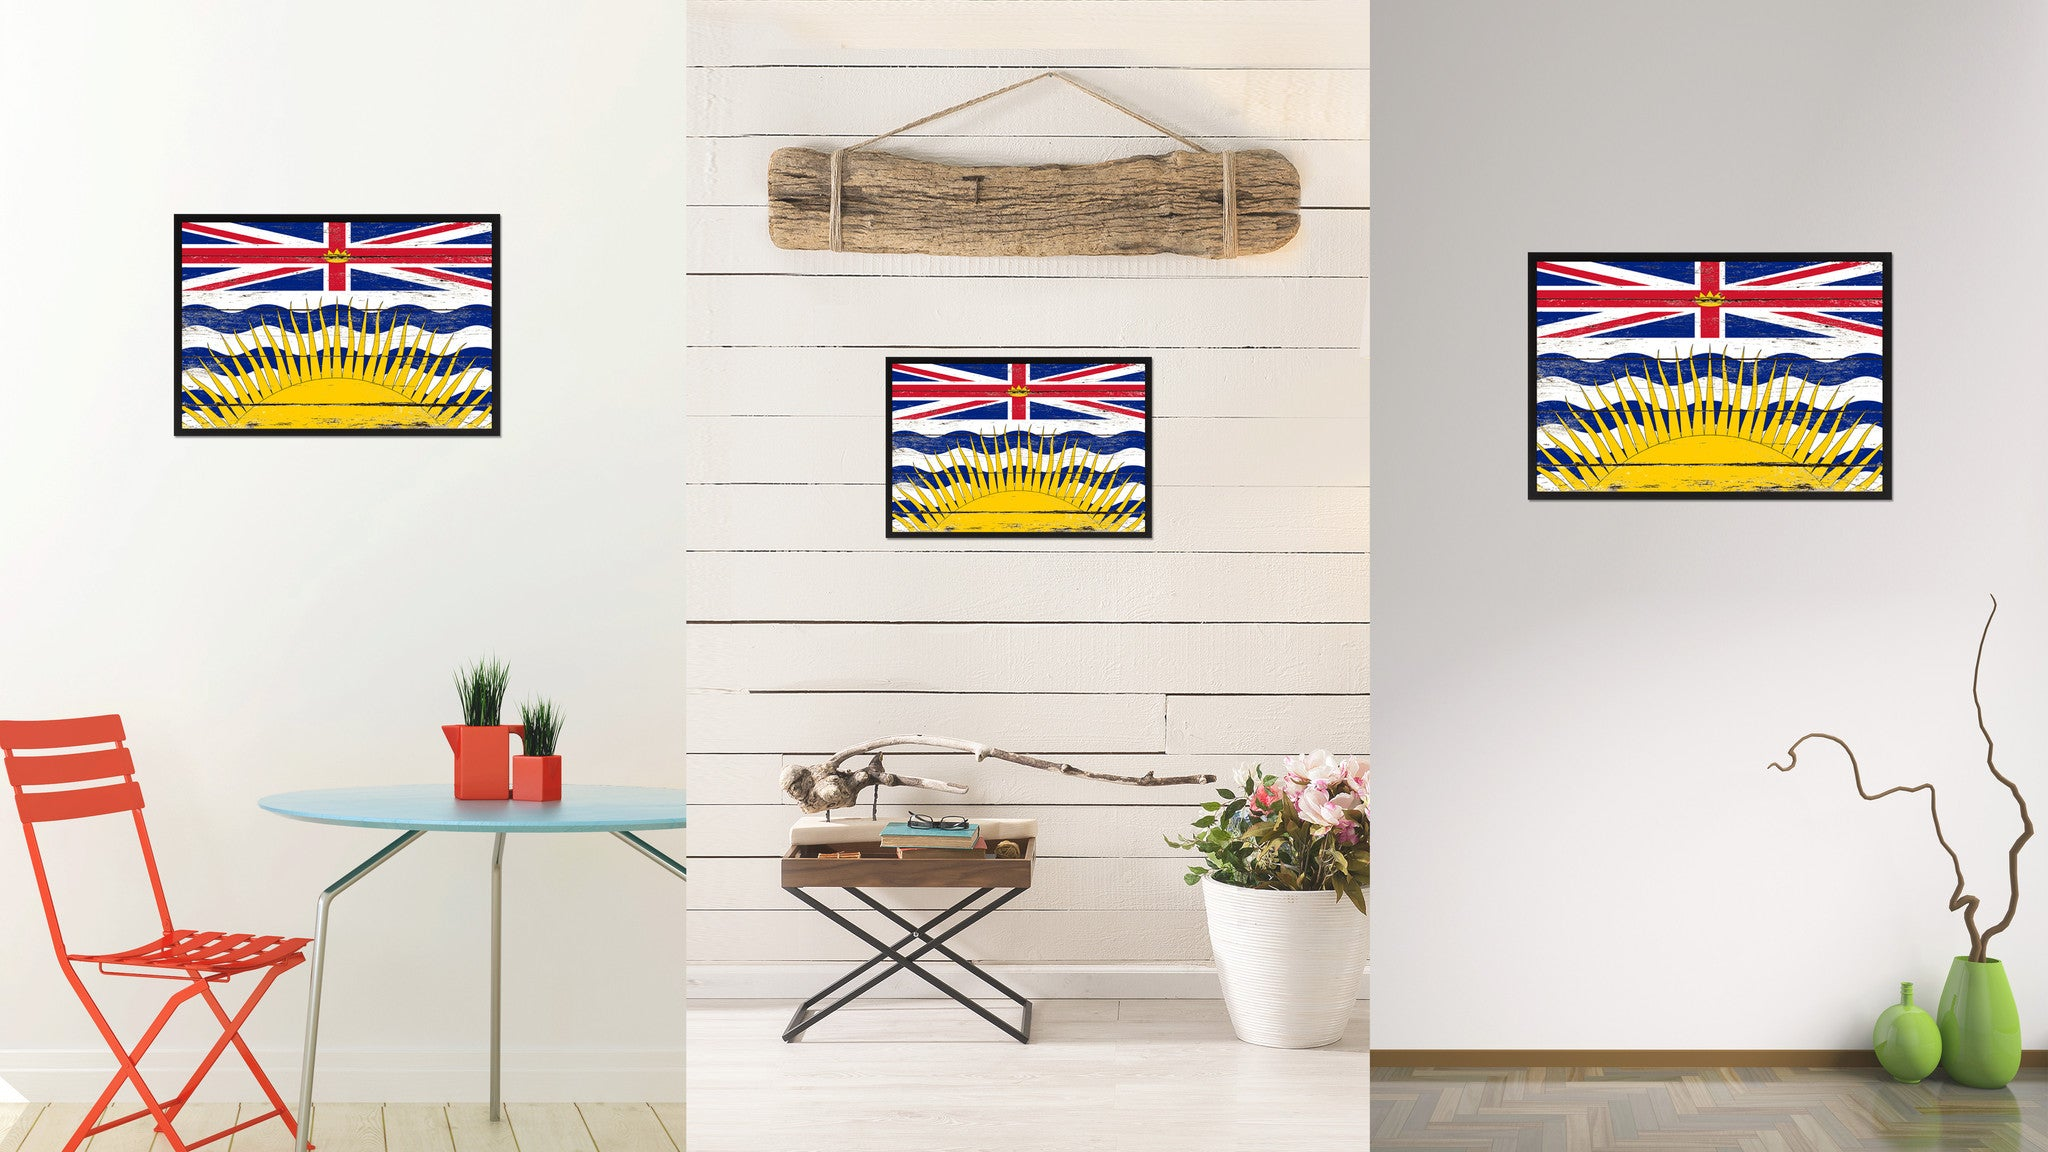 British Columbia Province City Canada Country Flag Vintage Canvas Print with Black Picture Frame Home Decor Wall Art Collectible Decoration Artwork Gifts